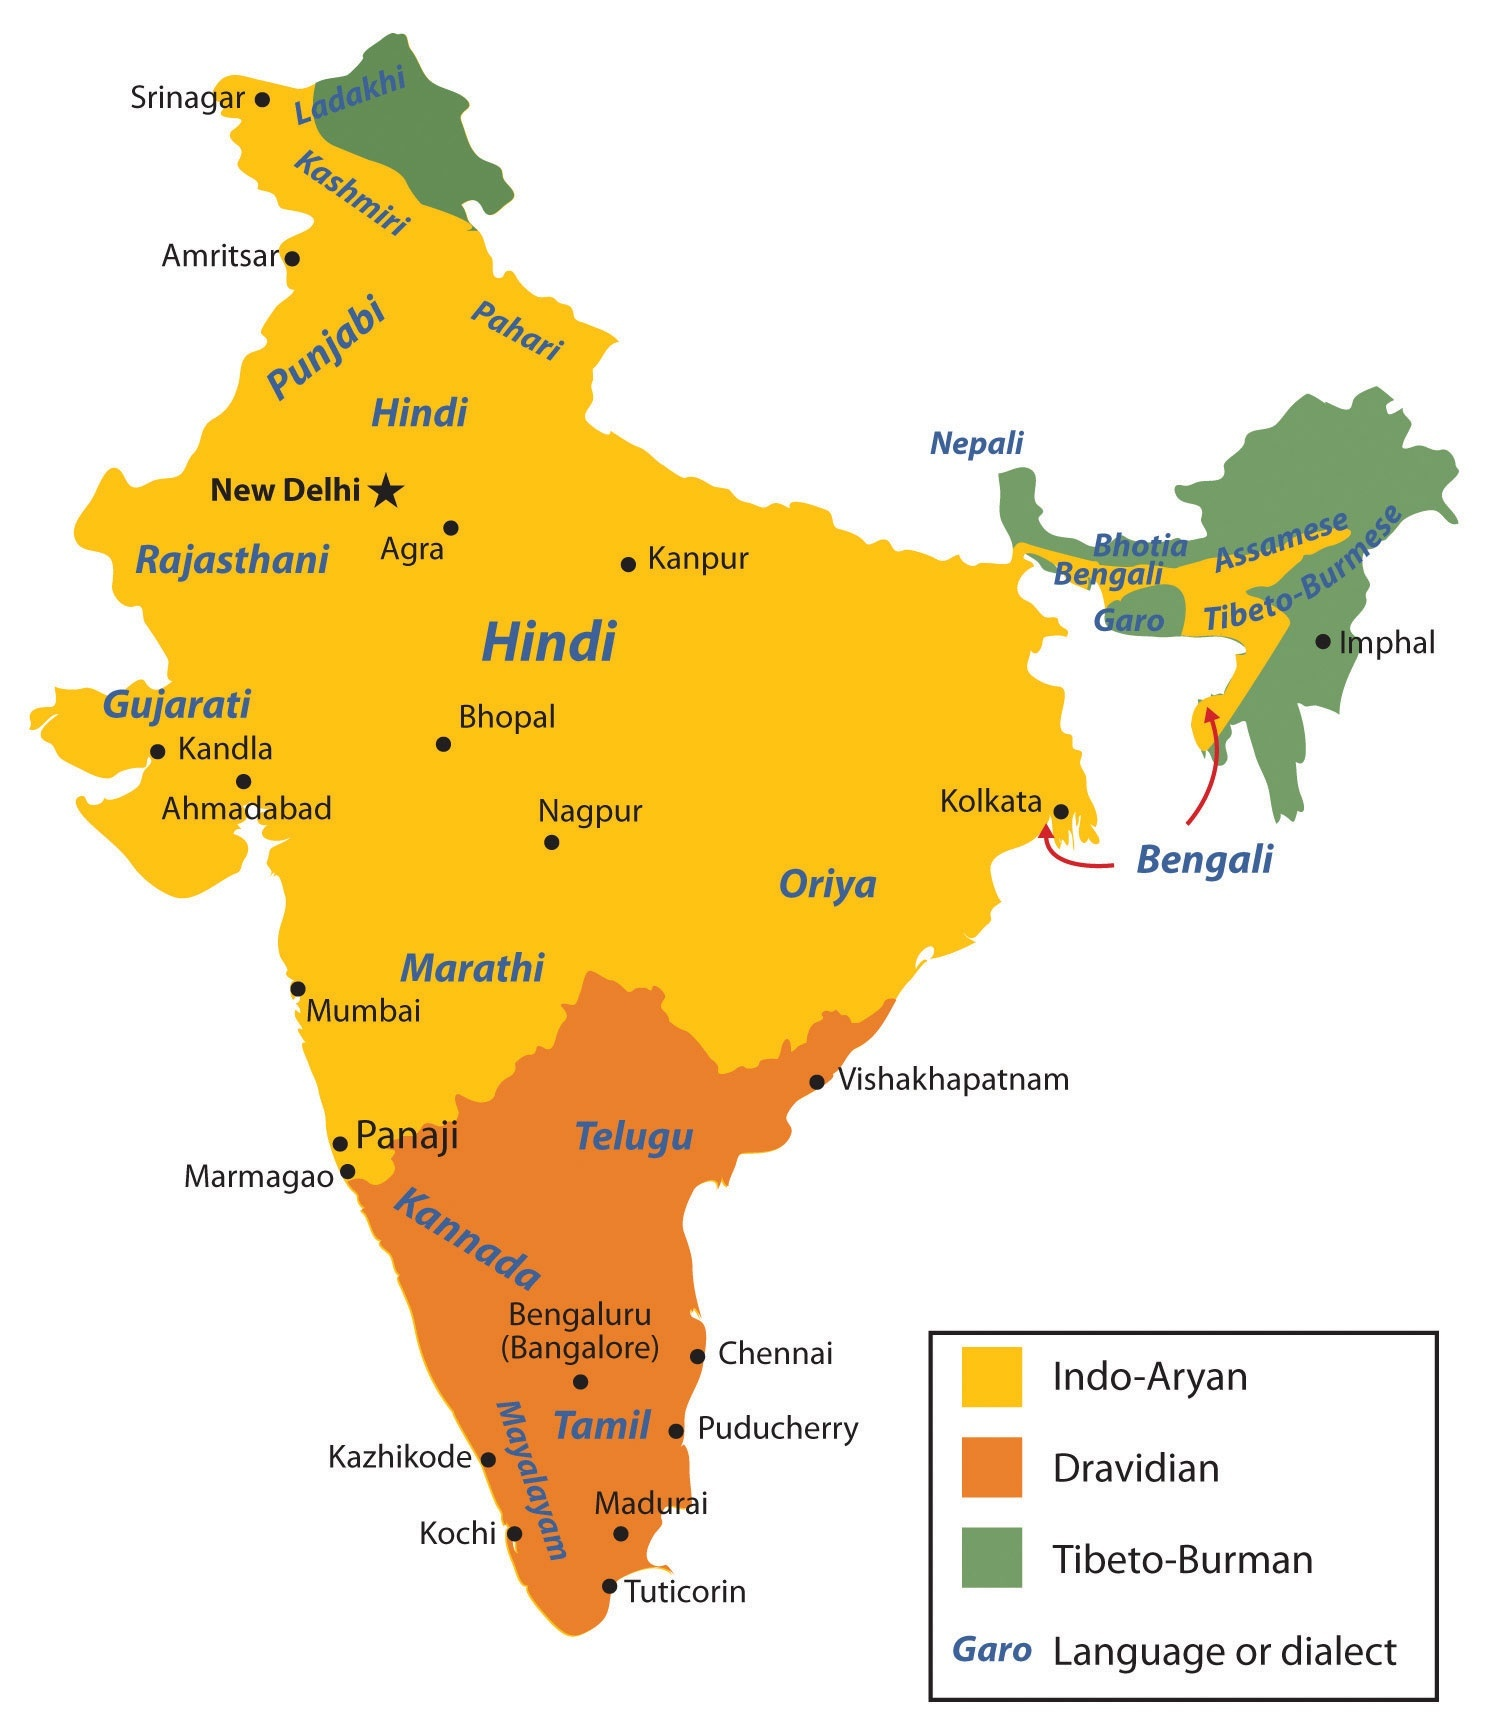 Is Telugu language different from Indian language? - Quora on india bar graph, india education map, india gdp per capita map, india stereotypes map, india and all its cities, india london map, india's map, india election map, india area code map, india cultural diffusion map, easy india map, india europe map, linguistic diversity map, india animals, india beautiful land, india main cities map, india landscape map, india countries map, india caste map, india and surrounding country map,